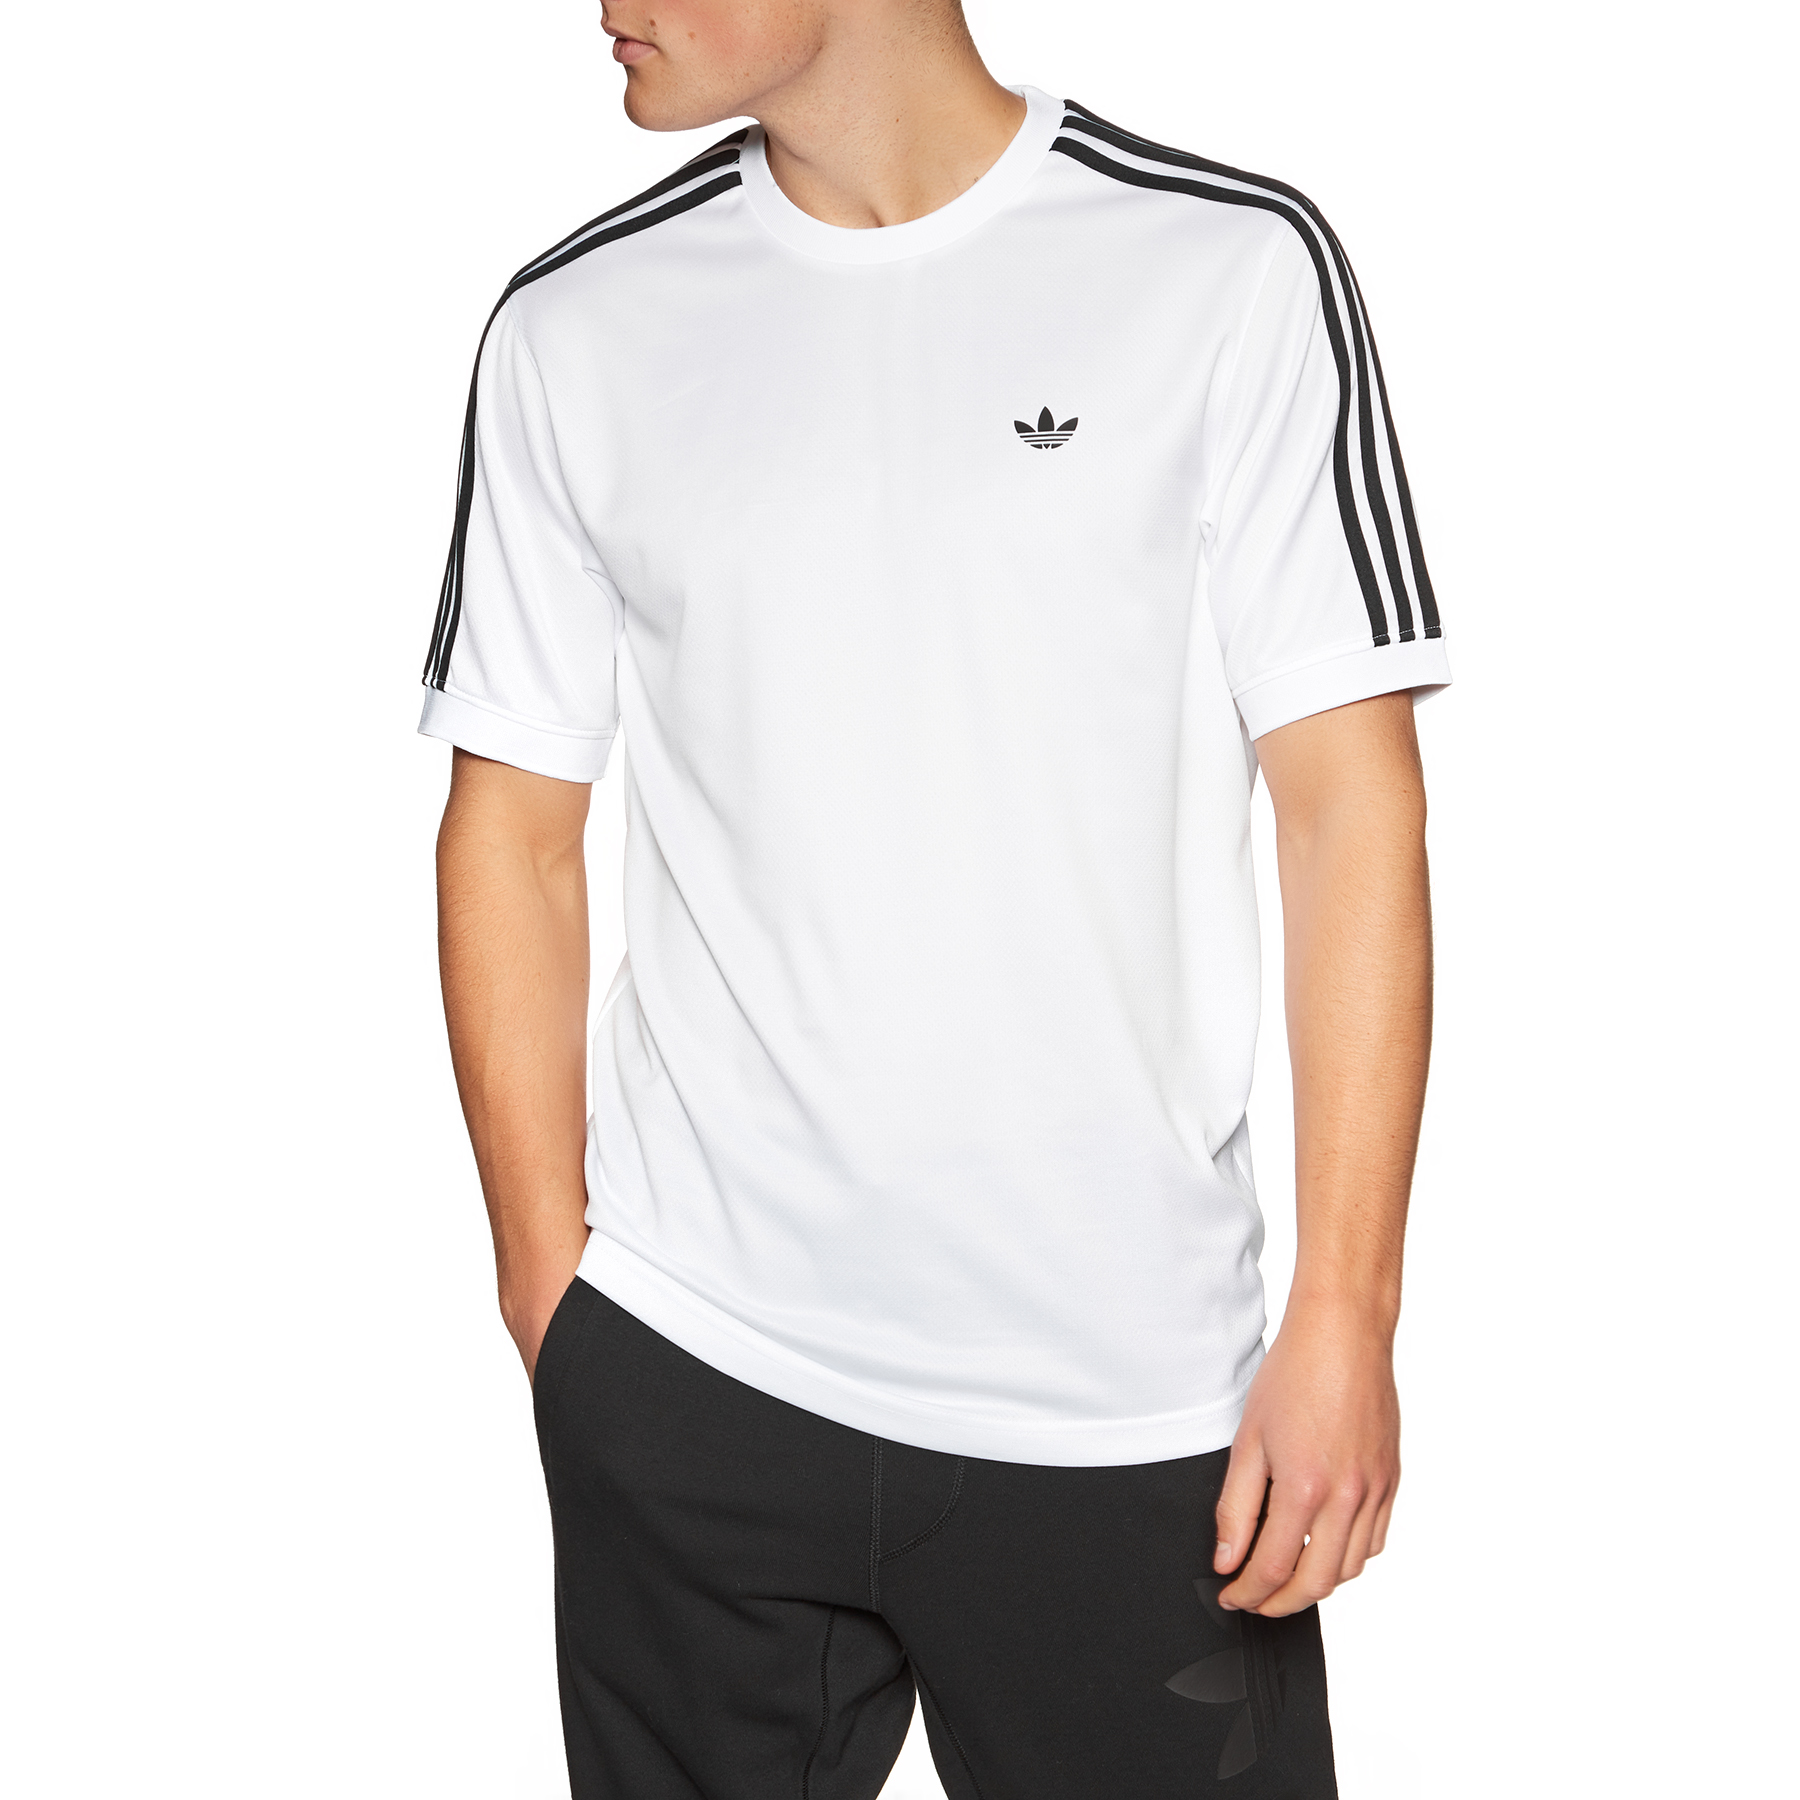 Adidas Aero Club Jersey Short Sleeve T-Shirt | Free Delivery Options